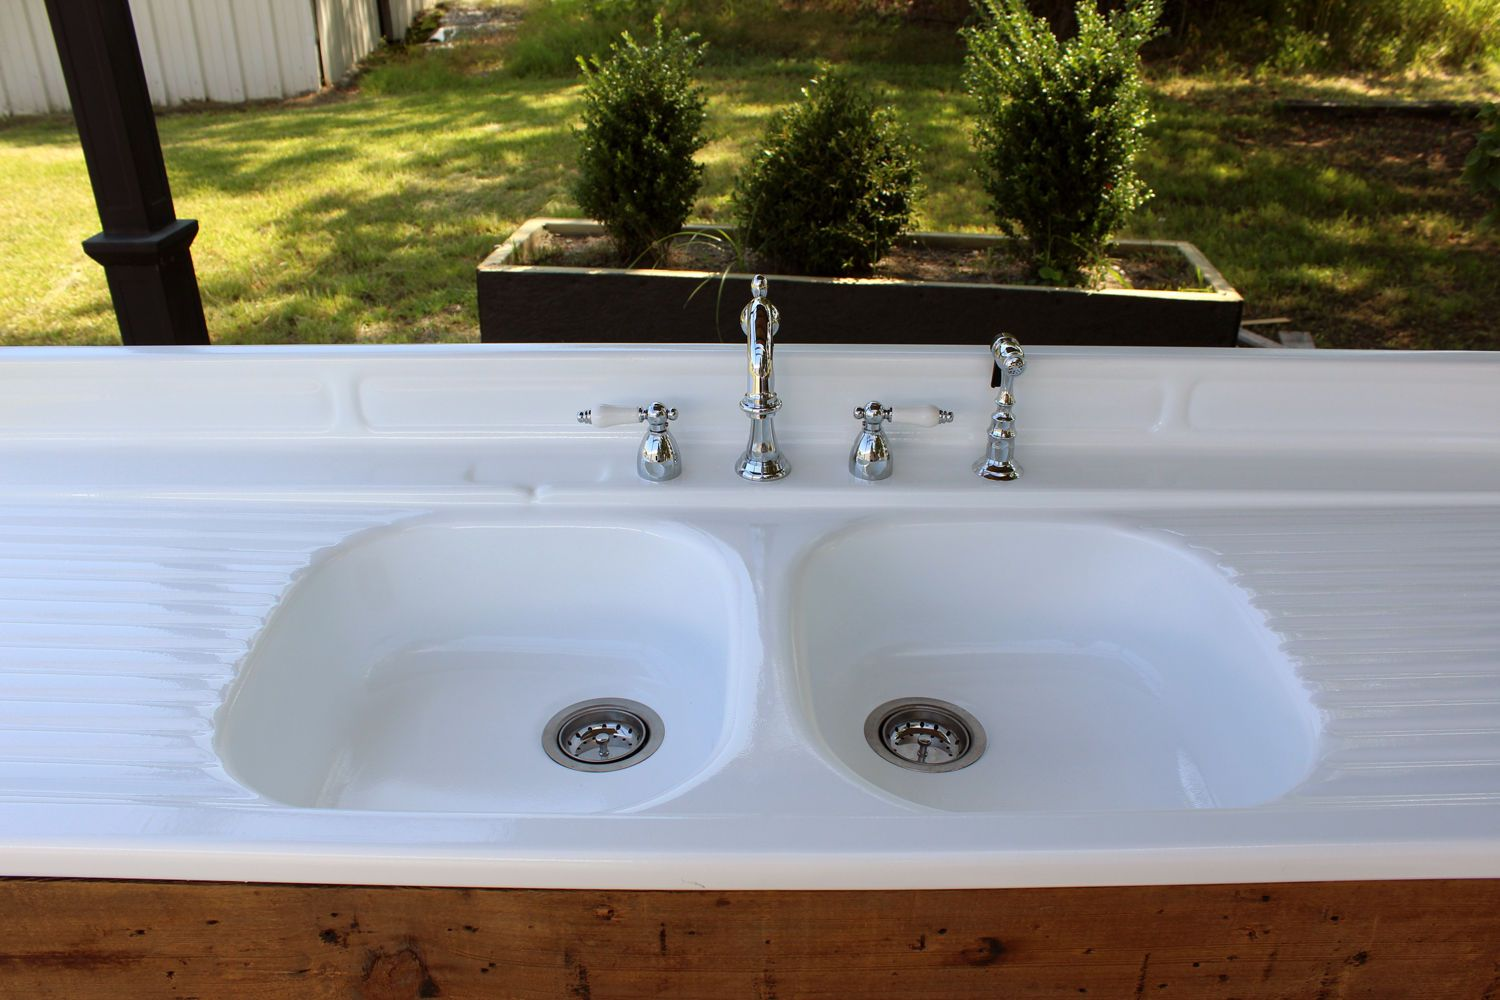 Refinished Stamped Metal Double Drainboard Farm Sink Barn